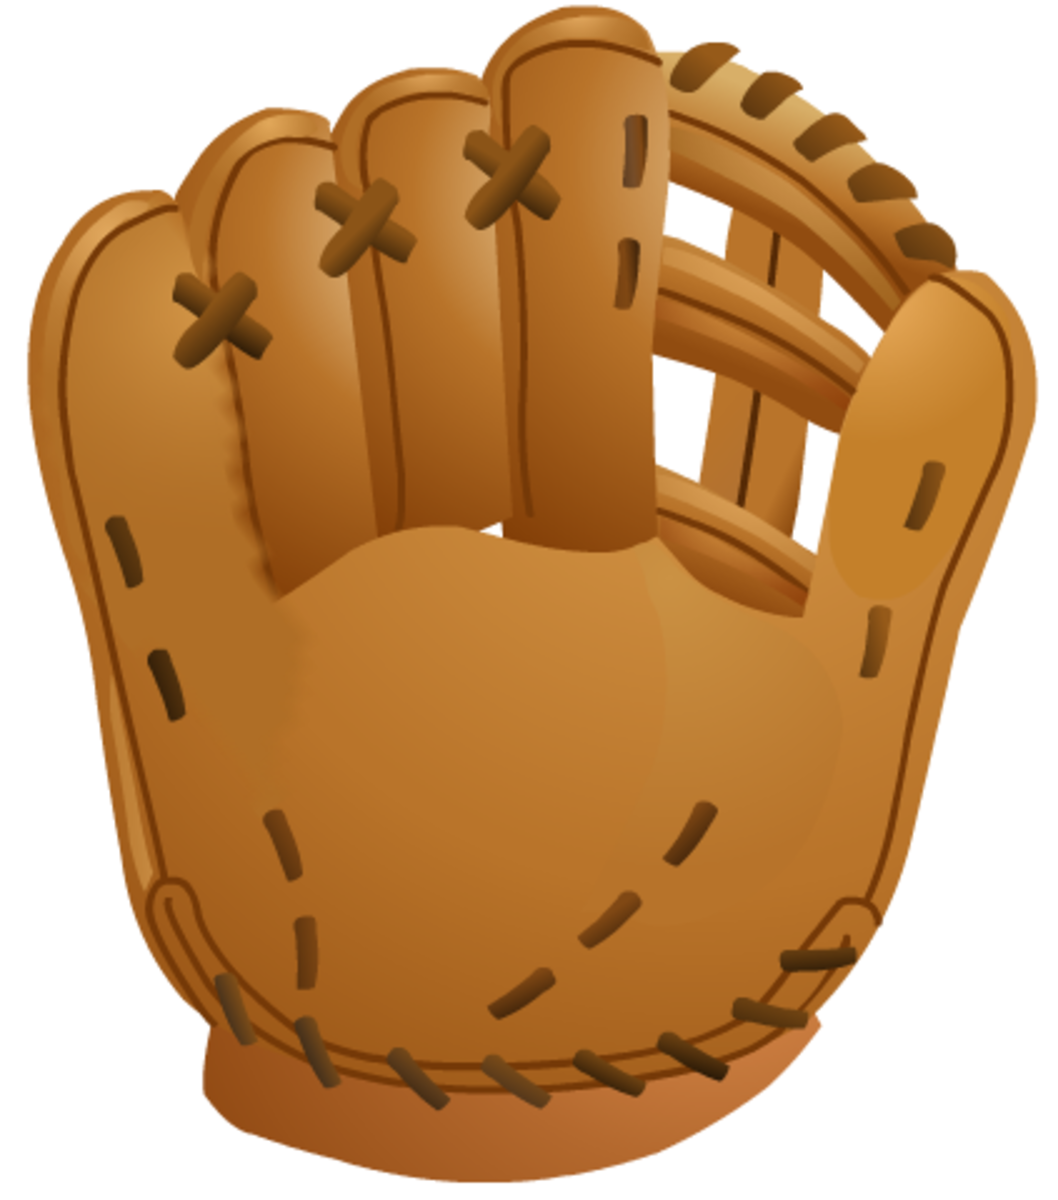 Baseball images: plain baseball glove for a left-handed player